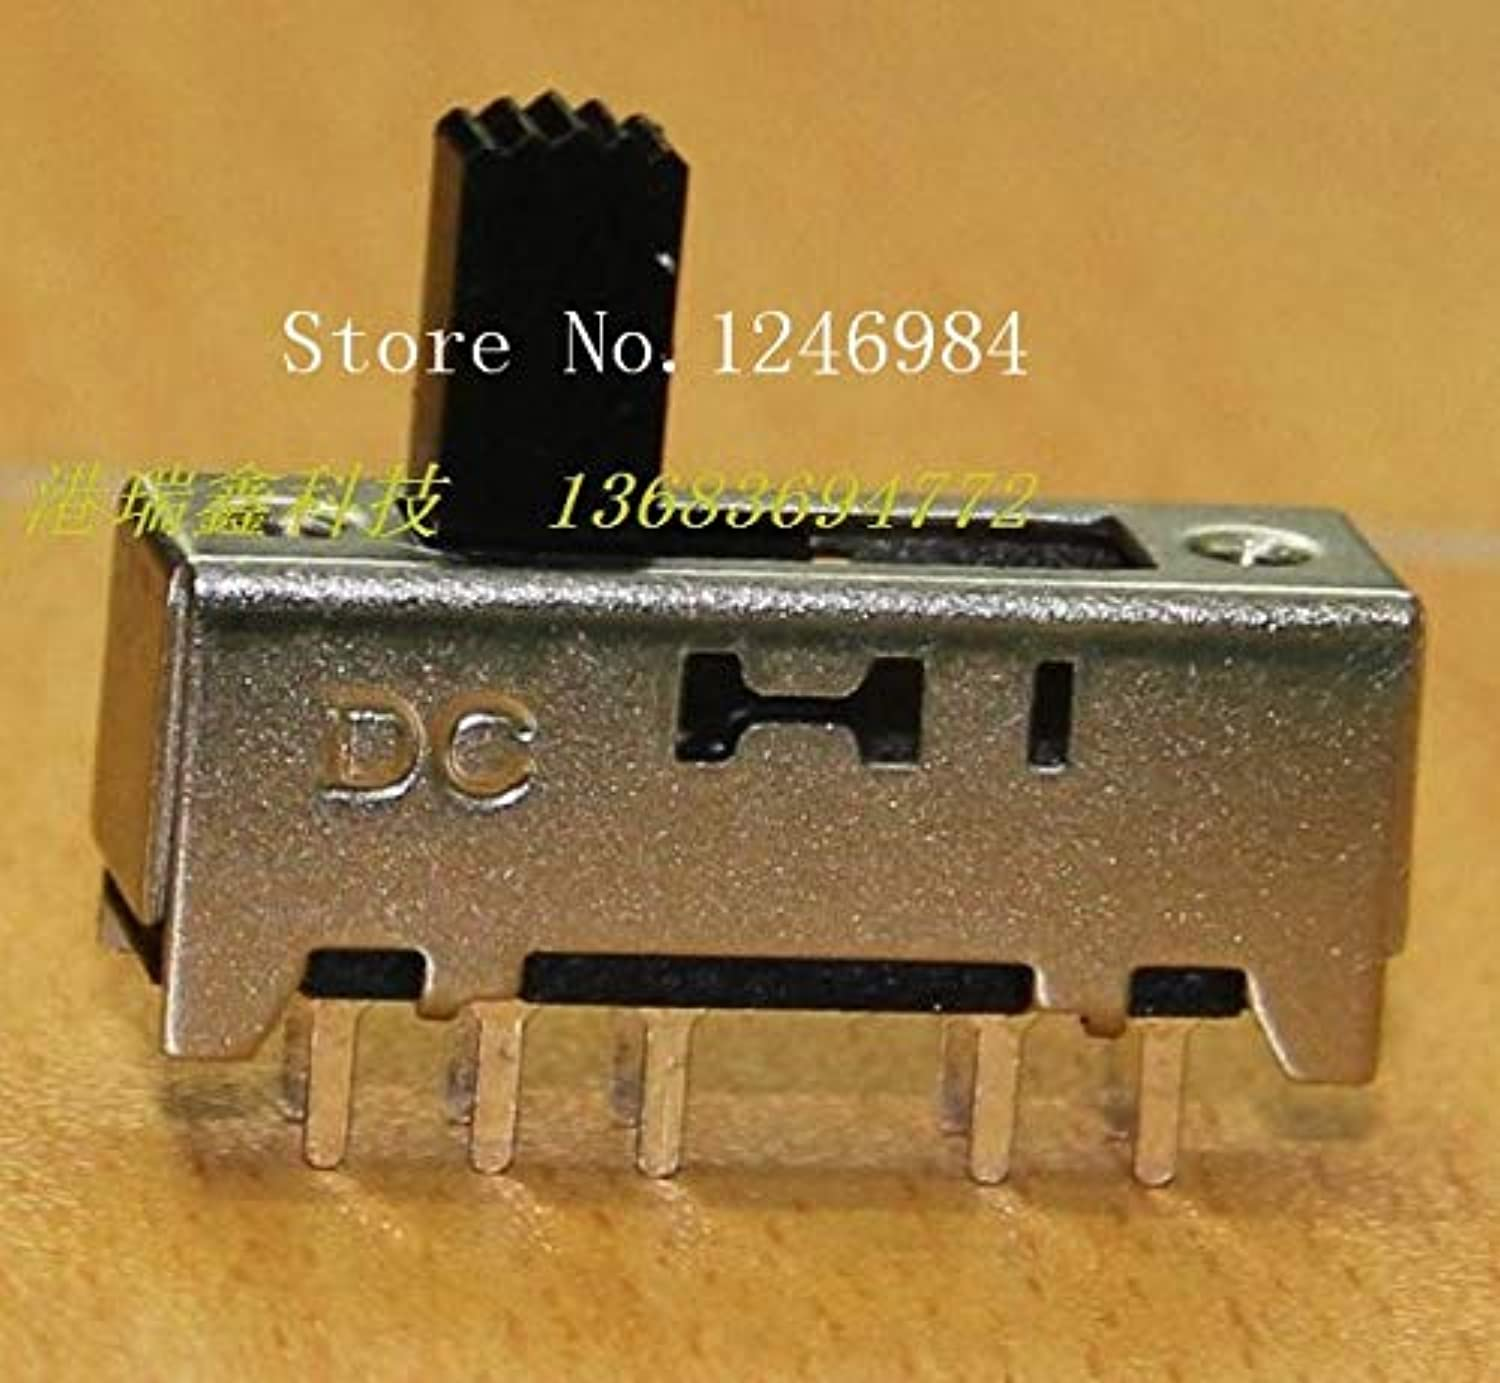 [SA]Small Electronic Switch Toggle Switch greenical Sliding Switch DC Power Fourth Gear Switch SS-24H03-100PCS LOT